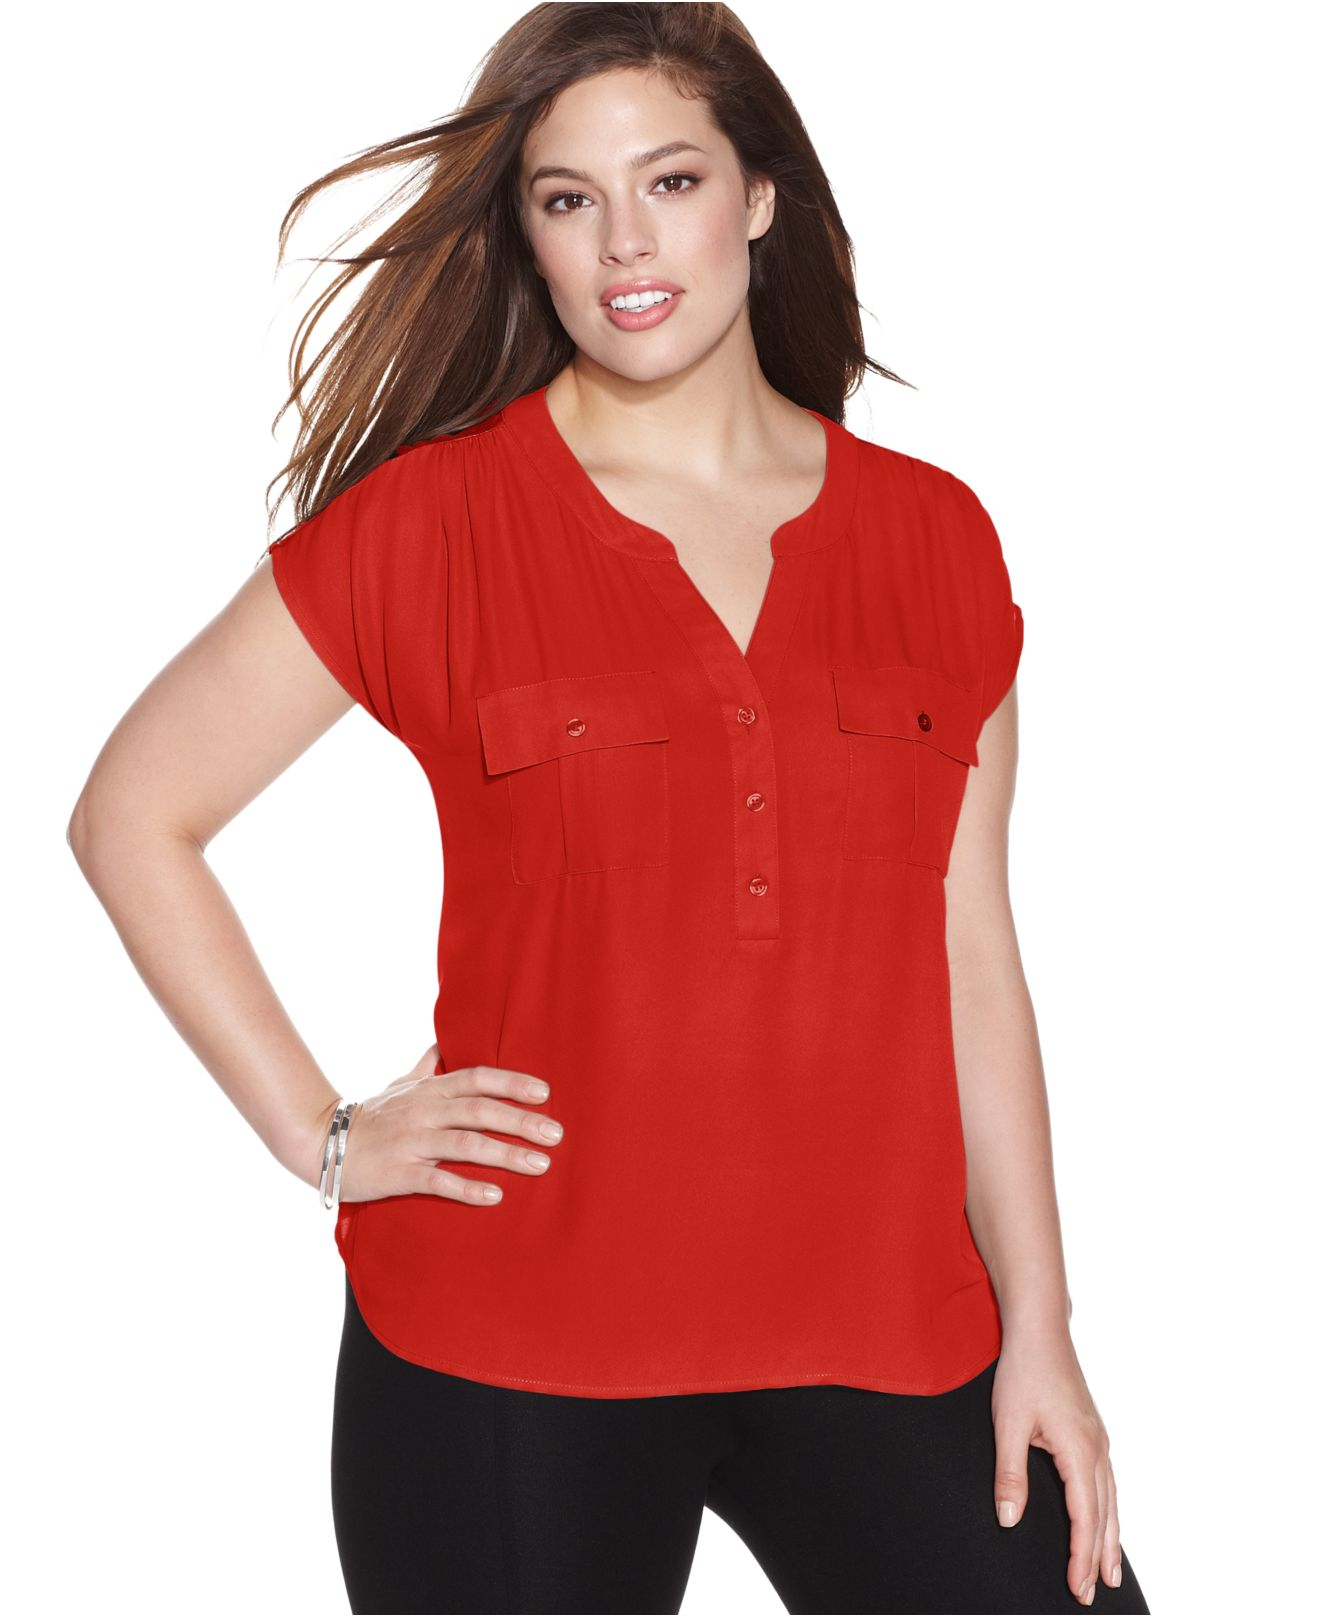 Womens Plus Size Blouse 108